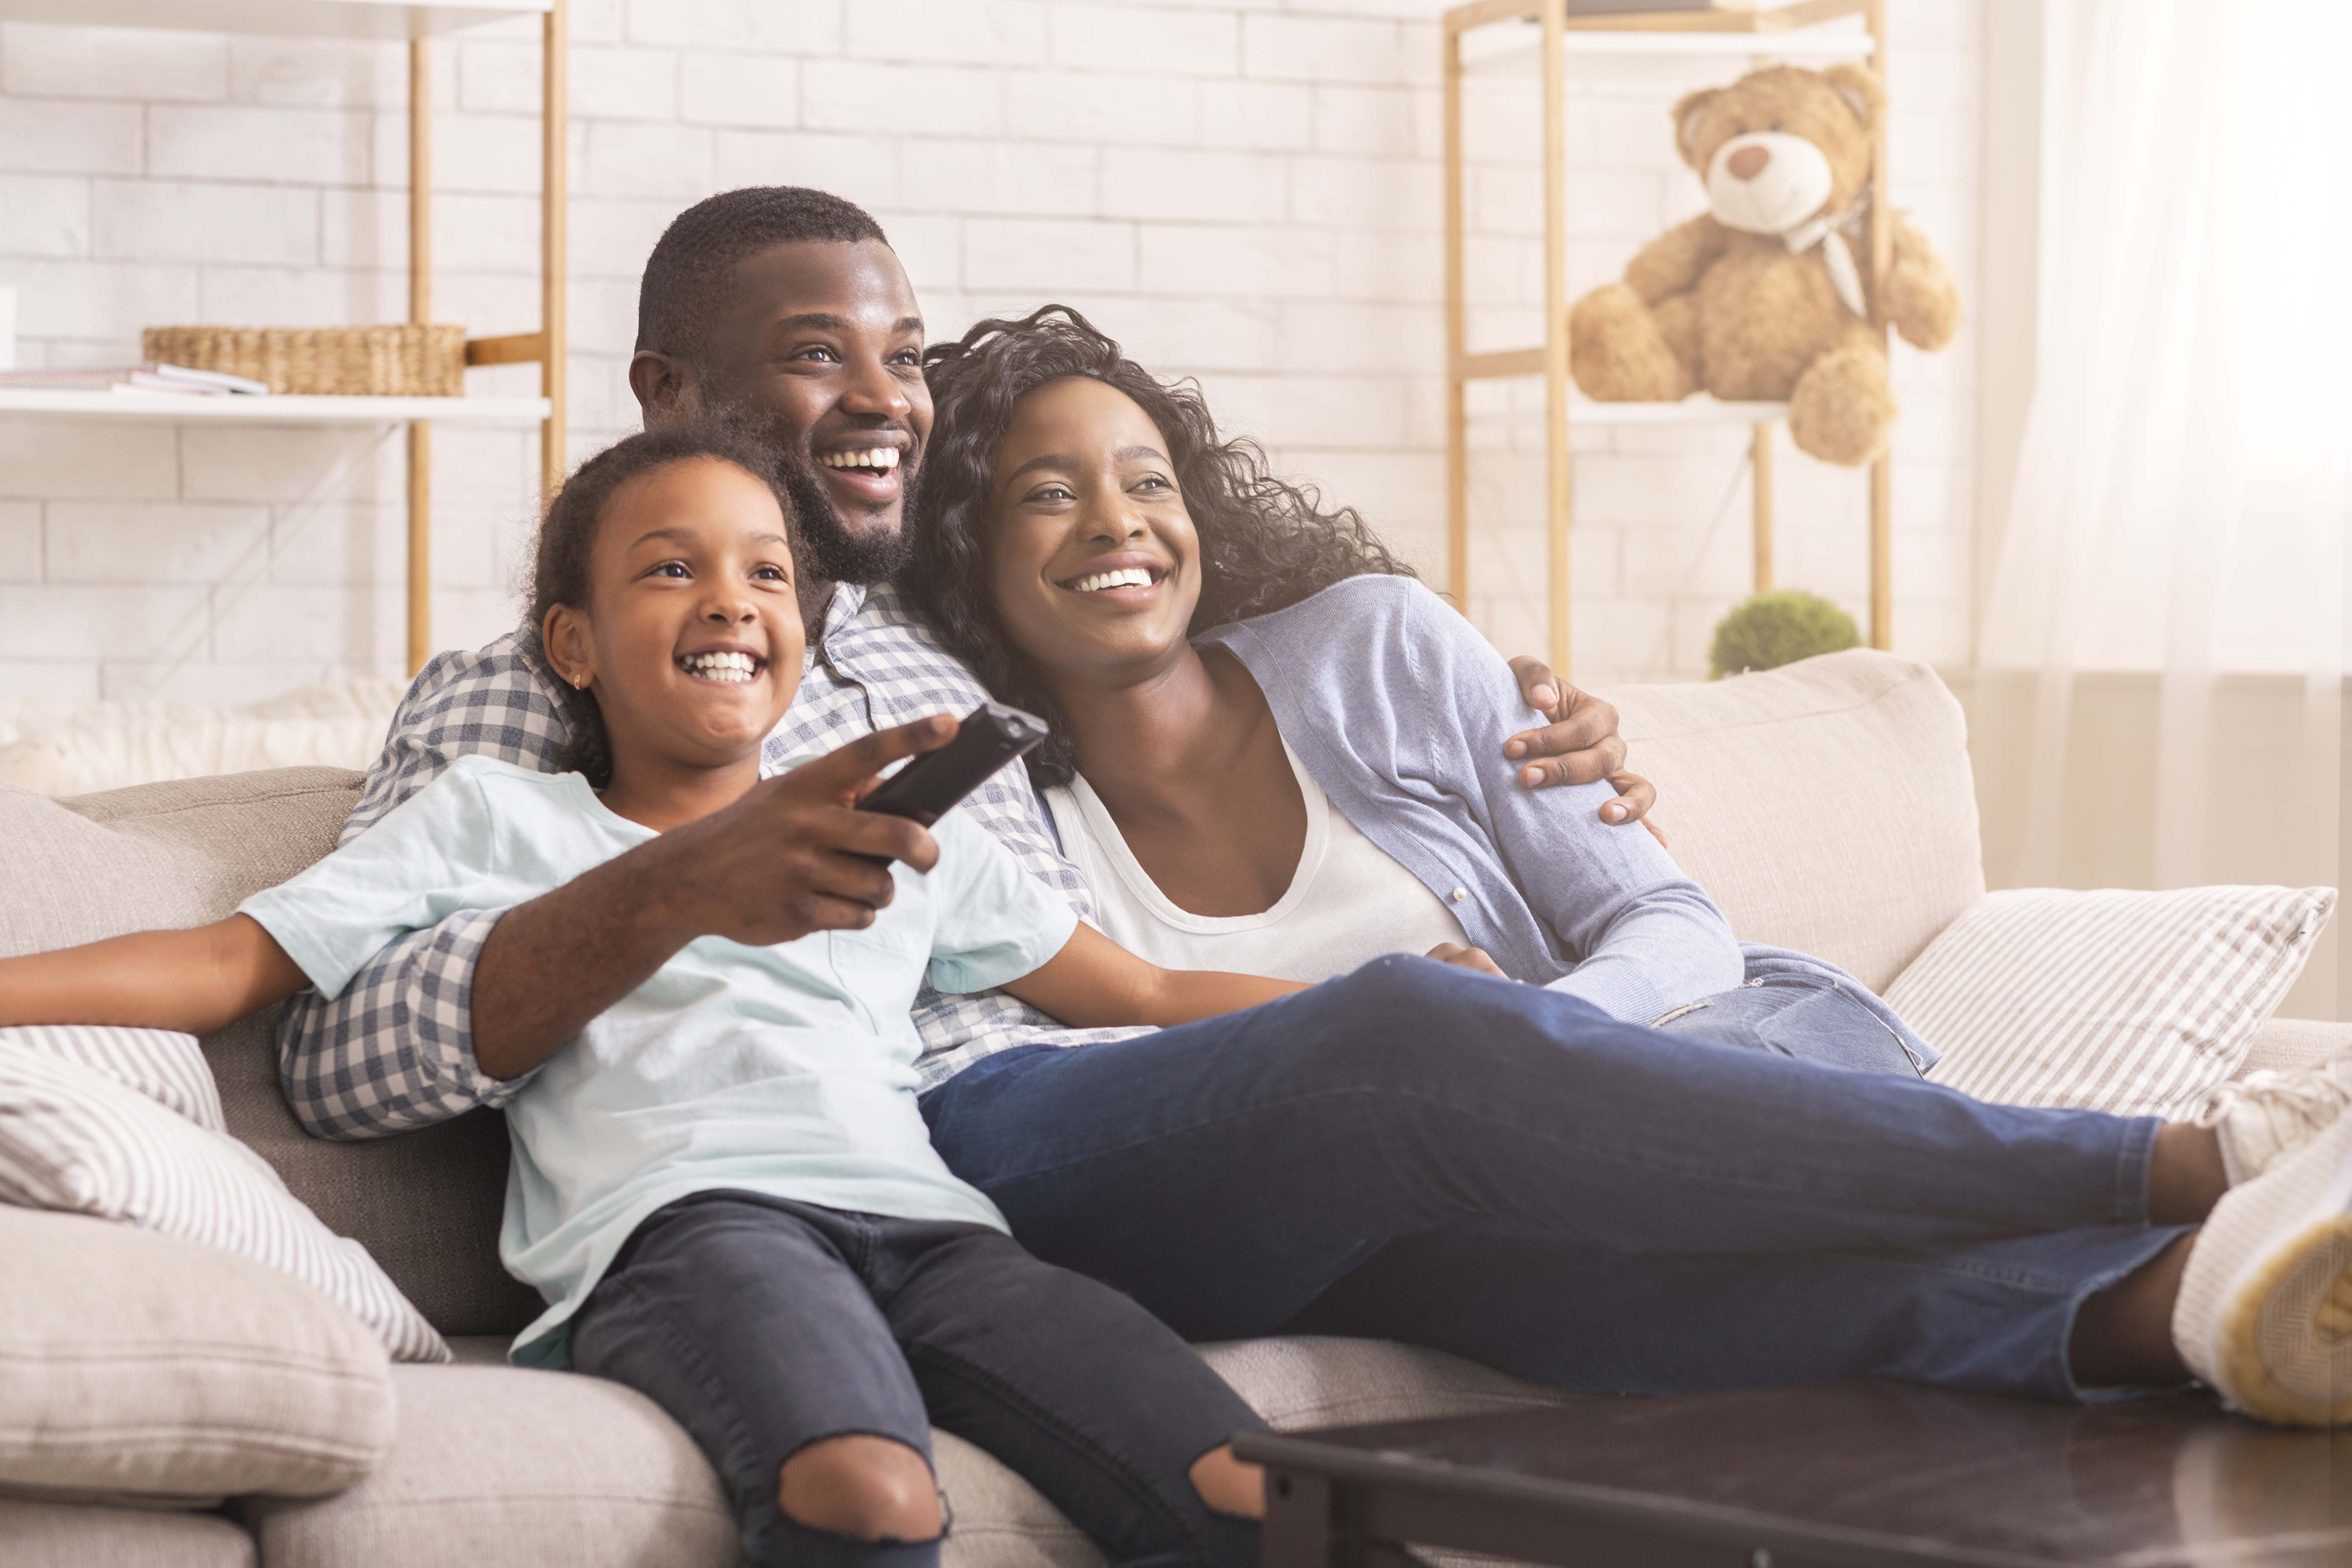 https://campaign-image.com/zohocampaigns/224260000001924021_zc_v23_family_watching_tv.jpg